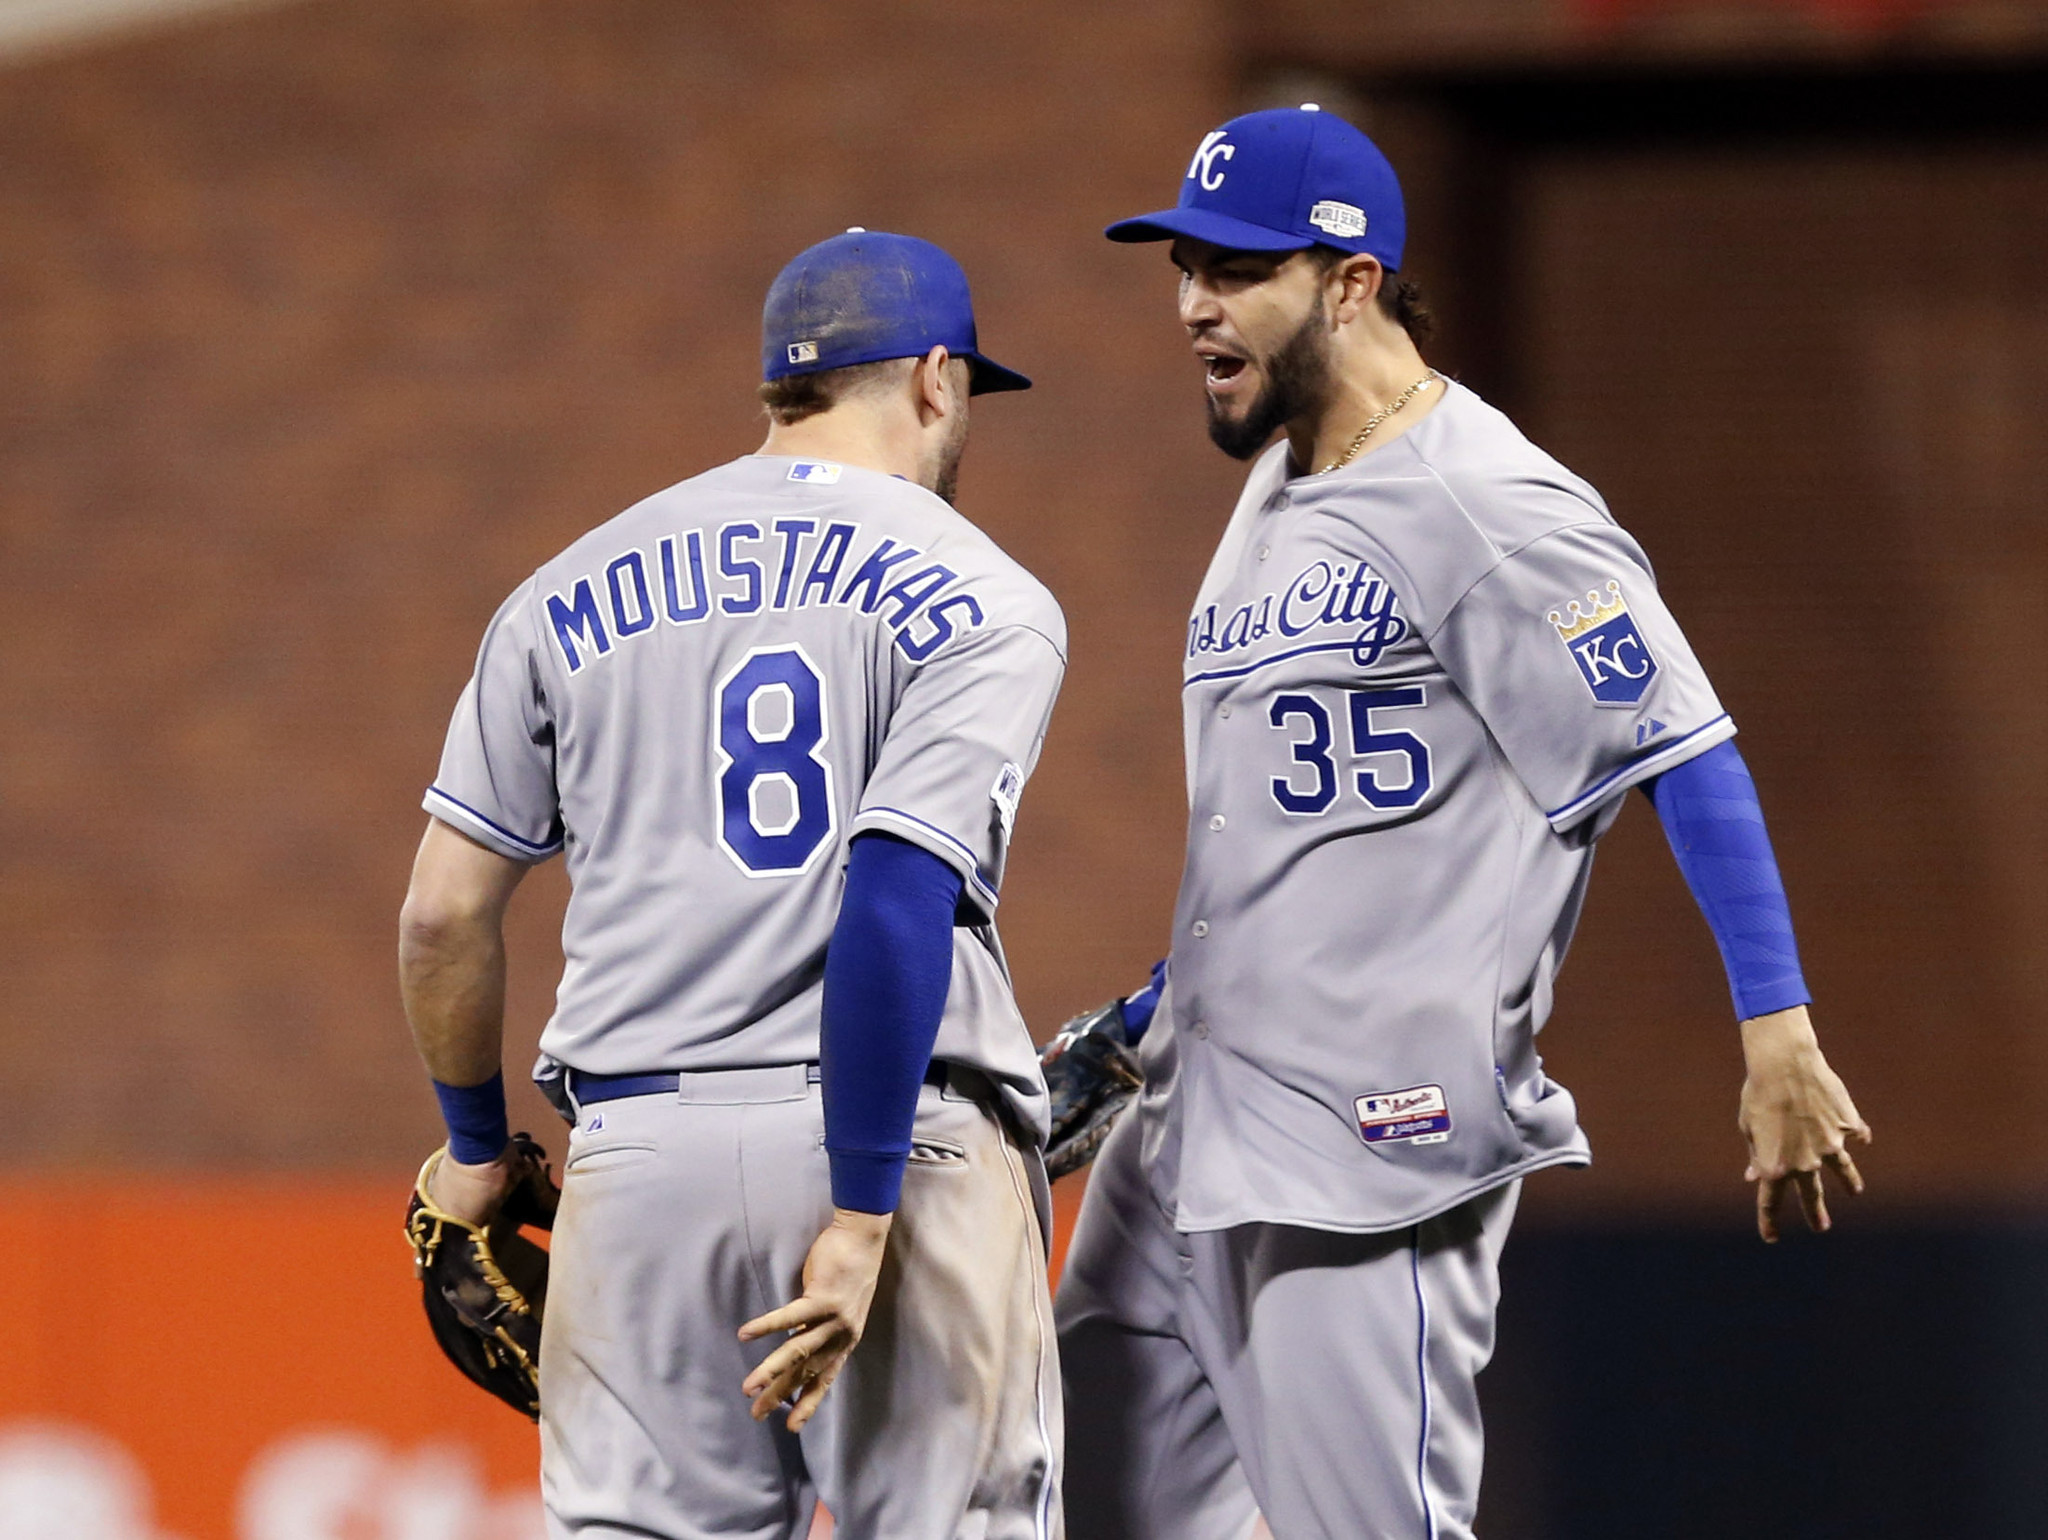 Royals take series lead with 3-2 win over Giants